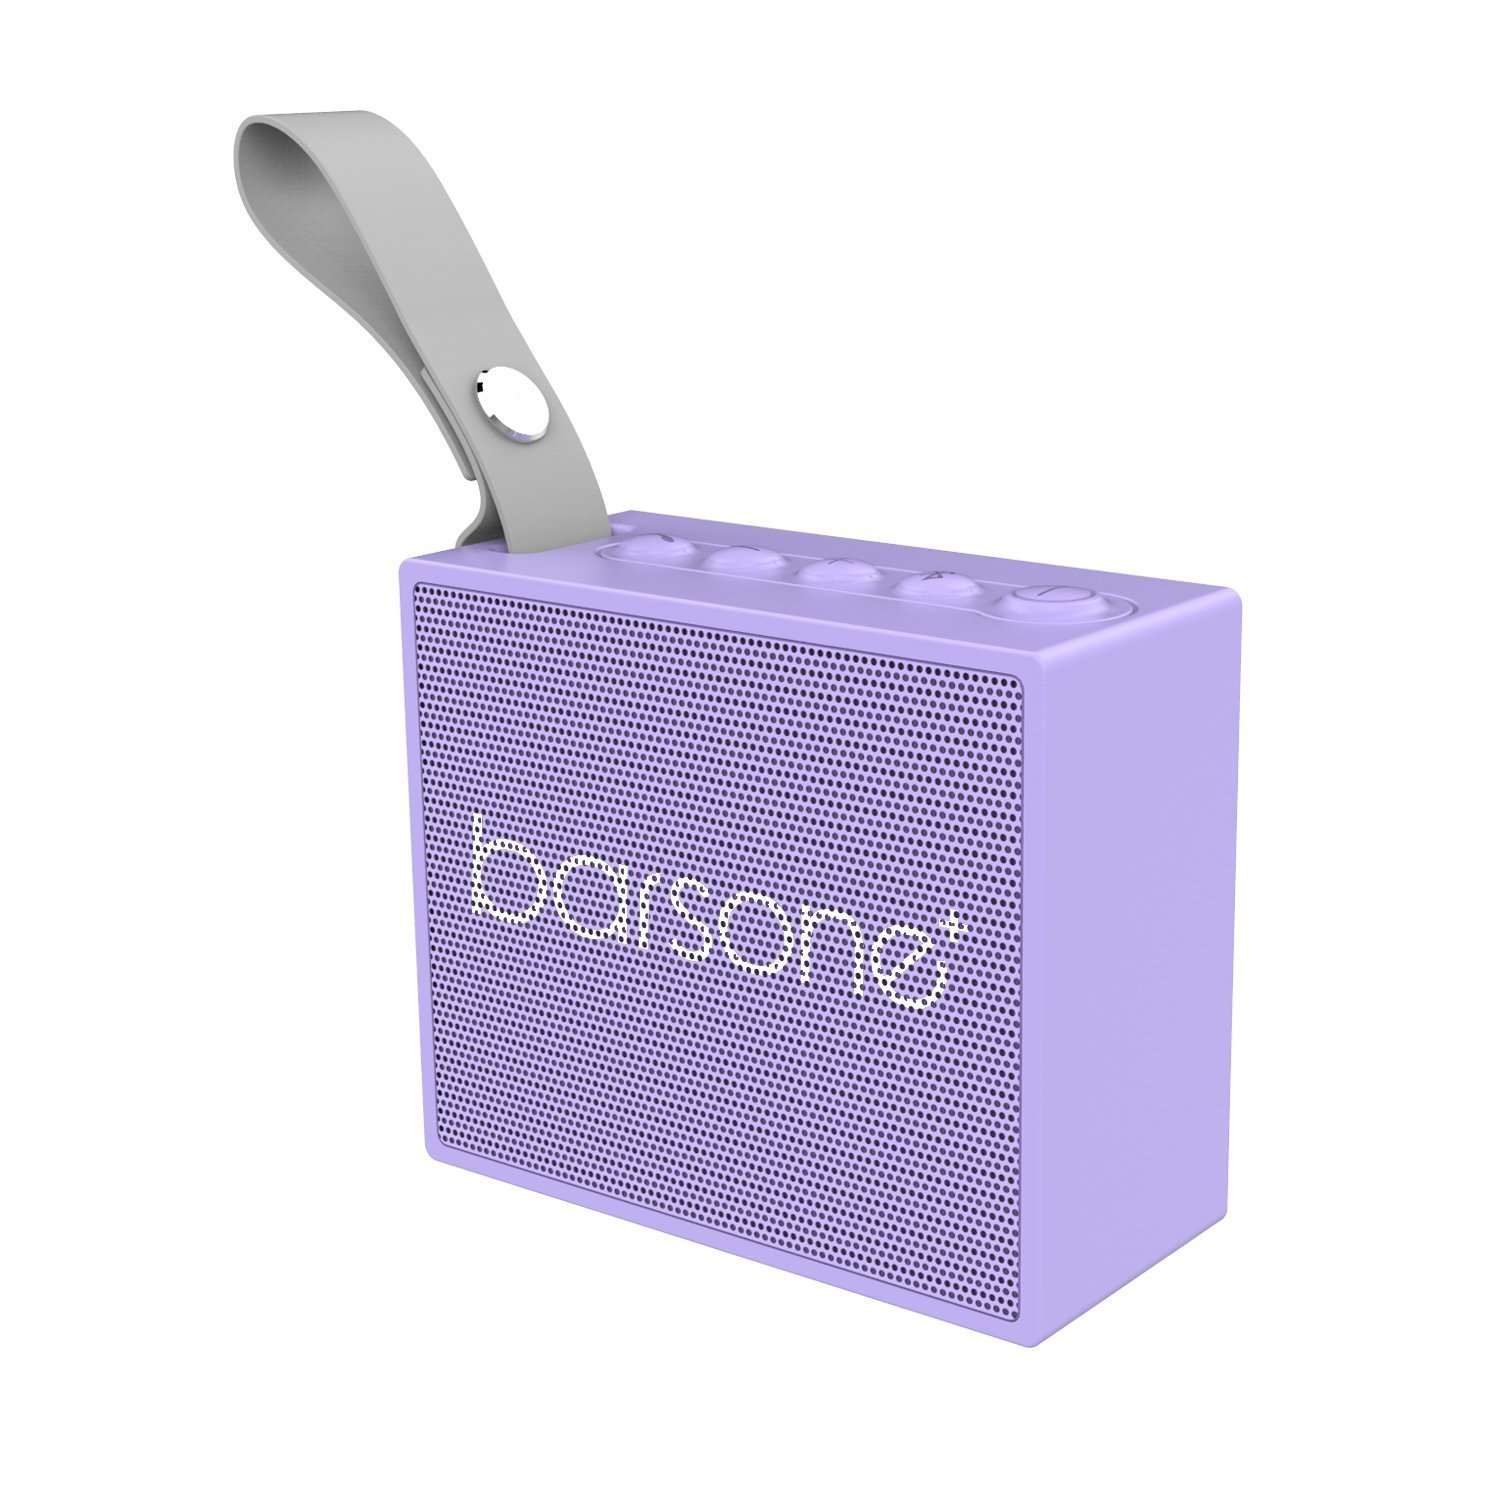 Speakers Wireless Bluetooth Barsone Outdoor Portable Speakers Enhanced Bass For PC Desktop Laptops TV Iphone (Purple)